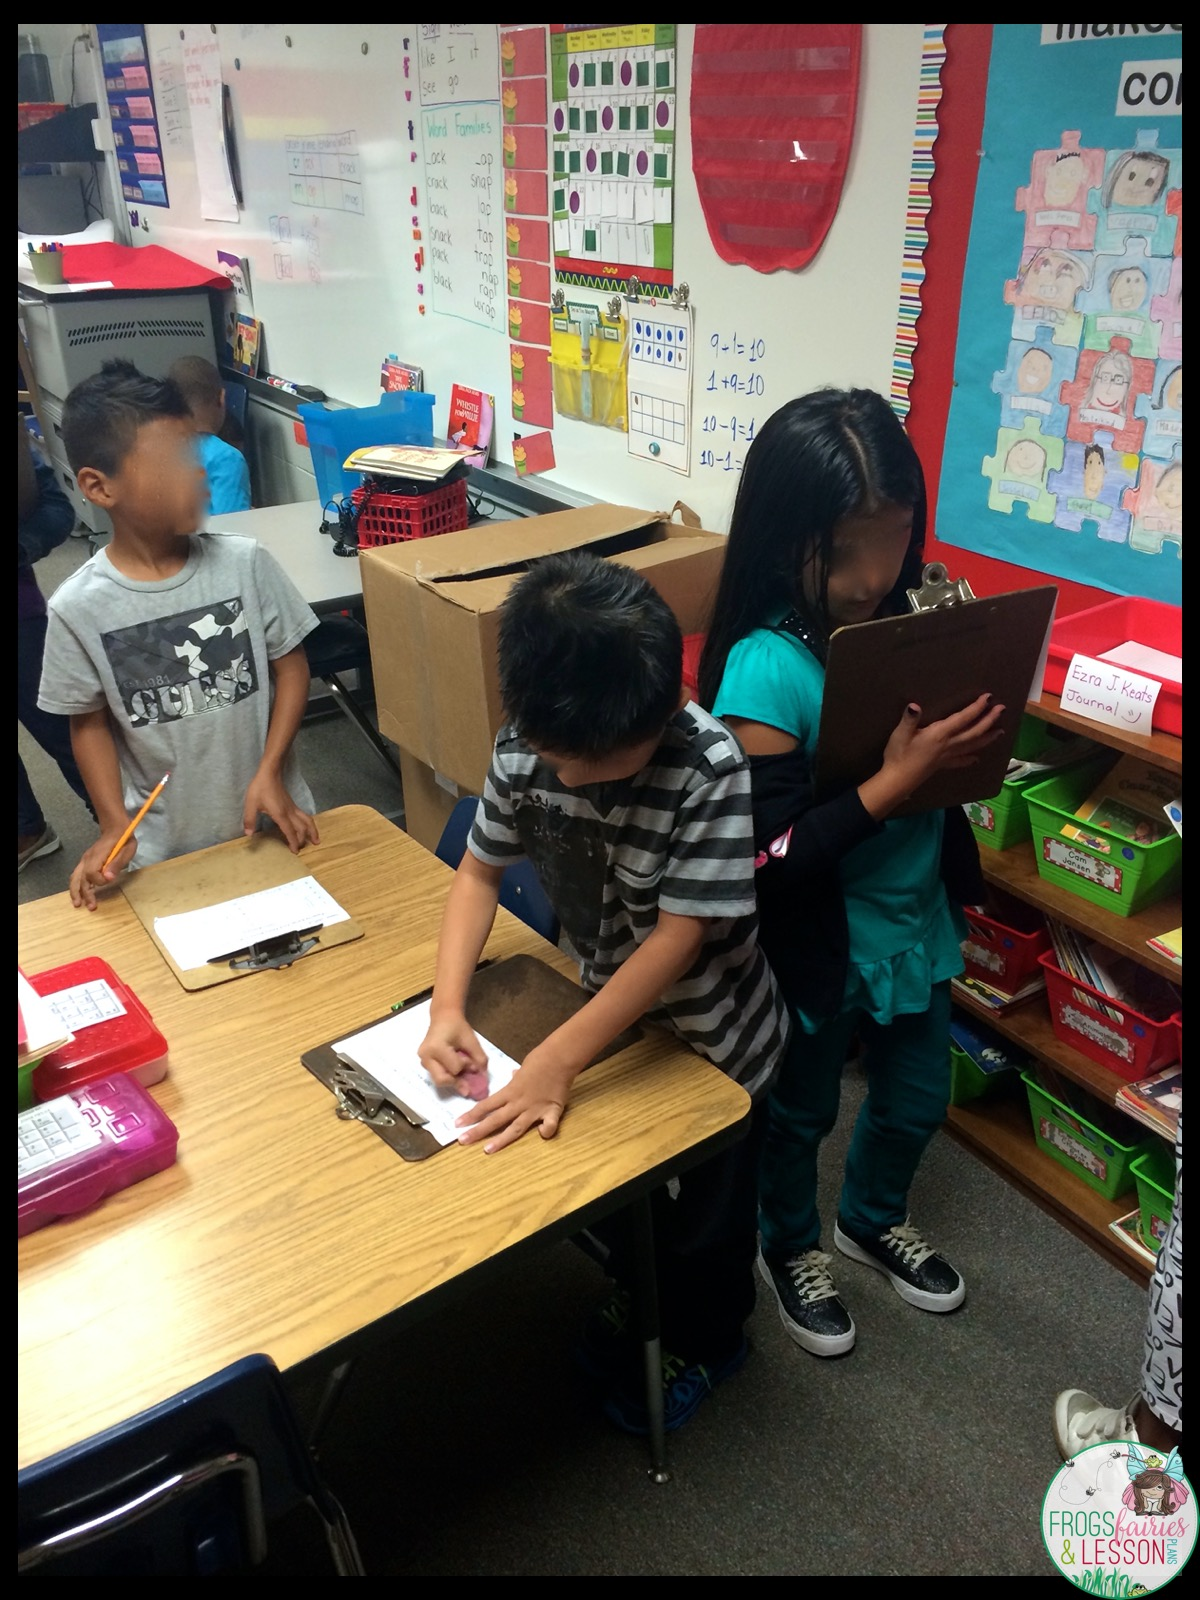 Students in the classroom working together